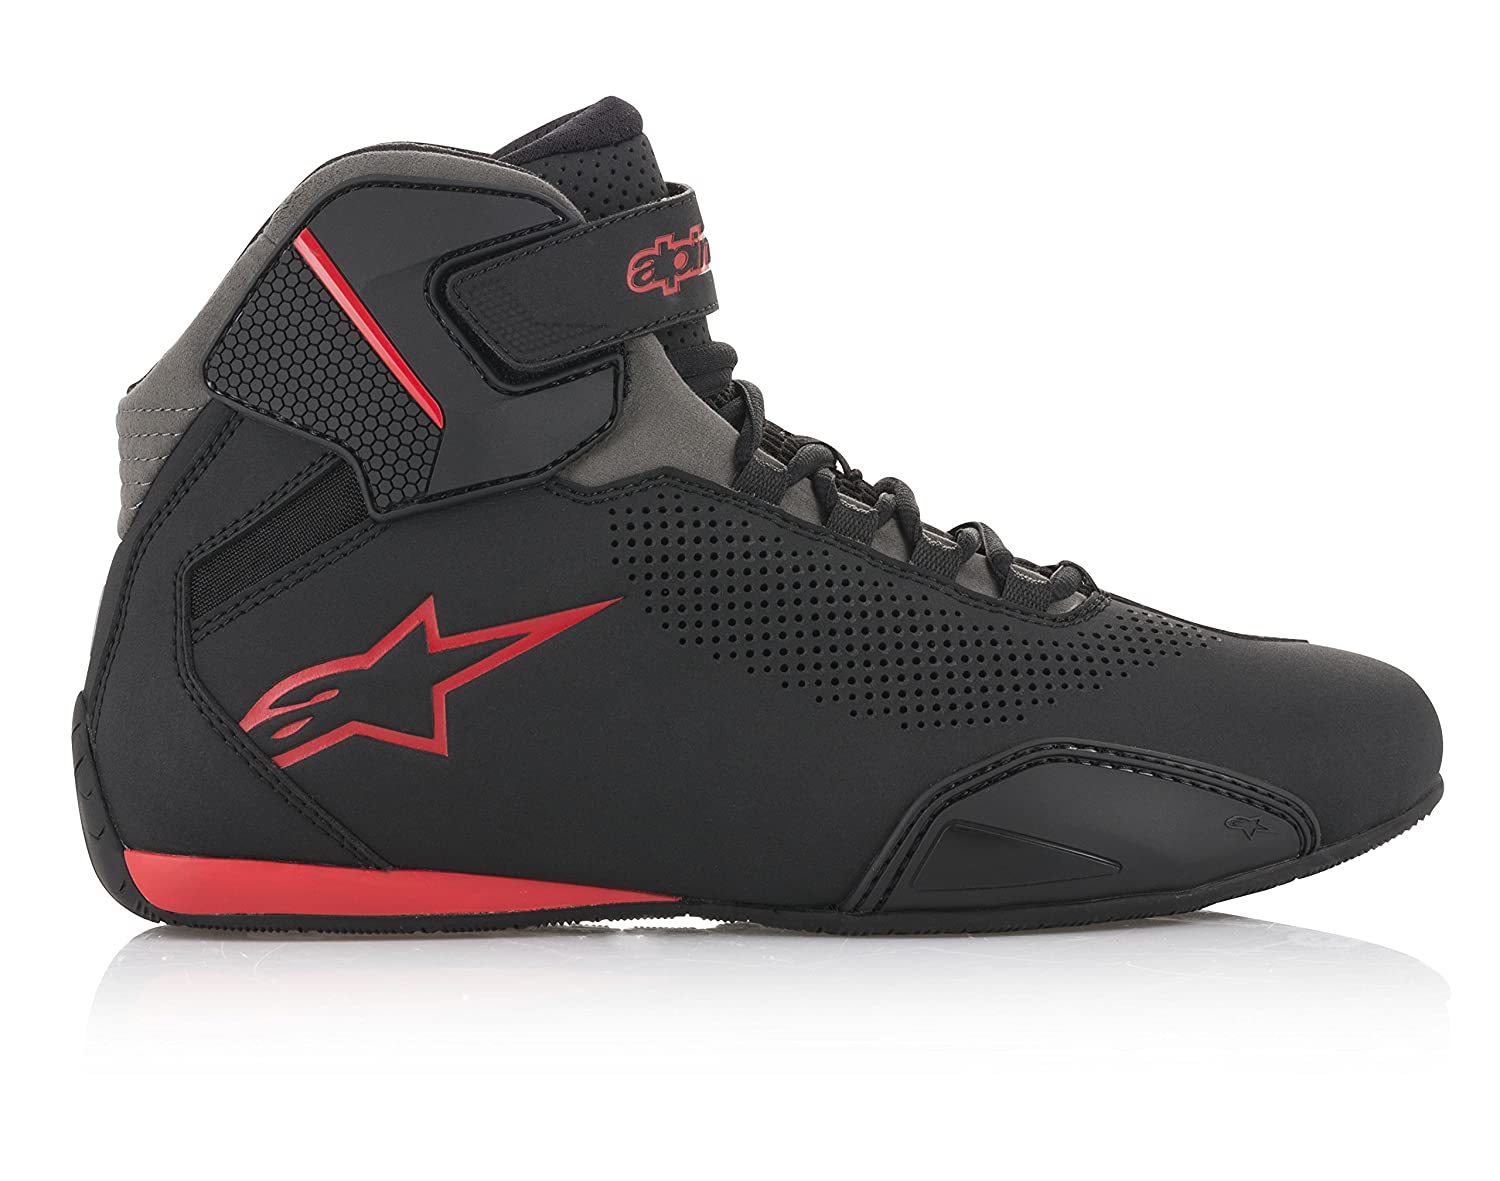 Alpinestars Mens 251561810105 Shoe Black Size 10.5